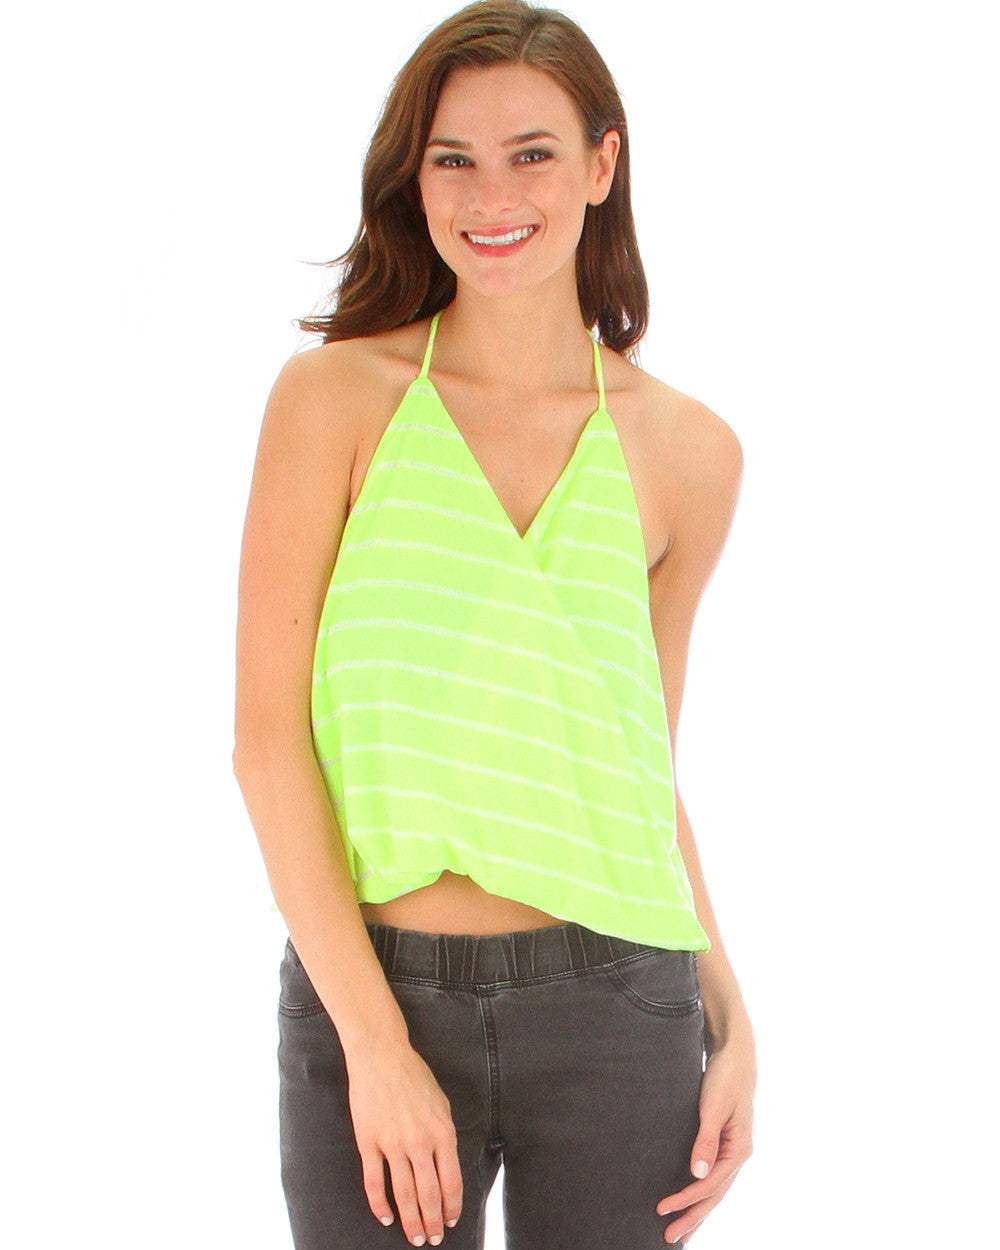 Dapperly Draped Striped Halter Top In Neon